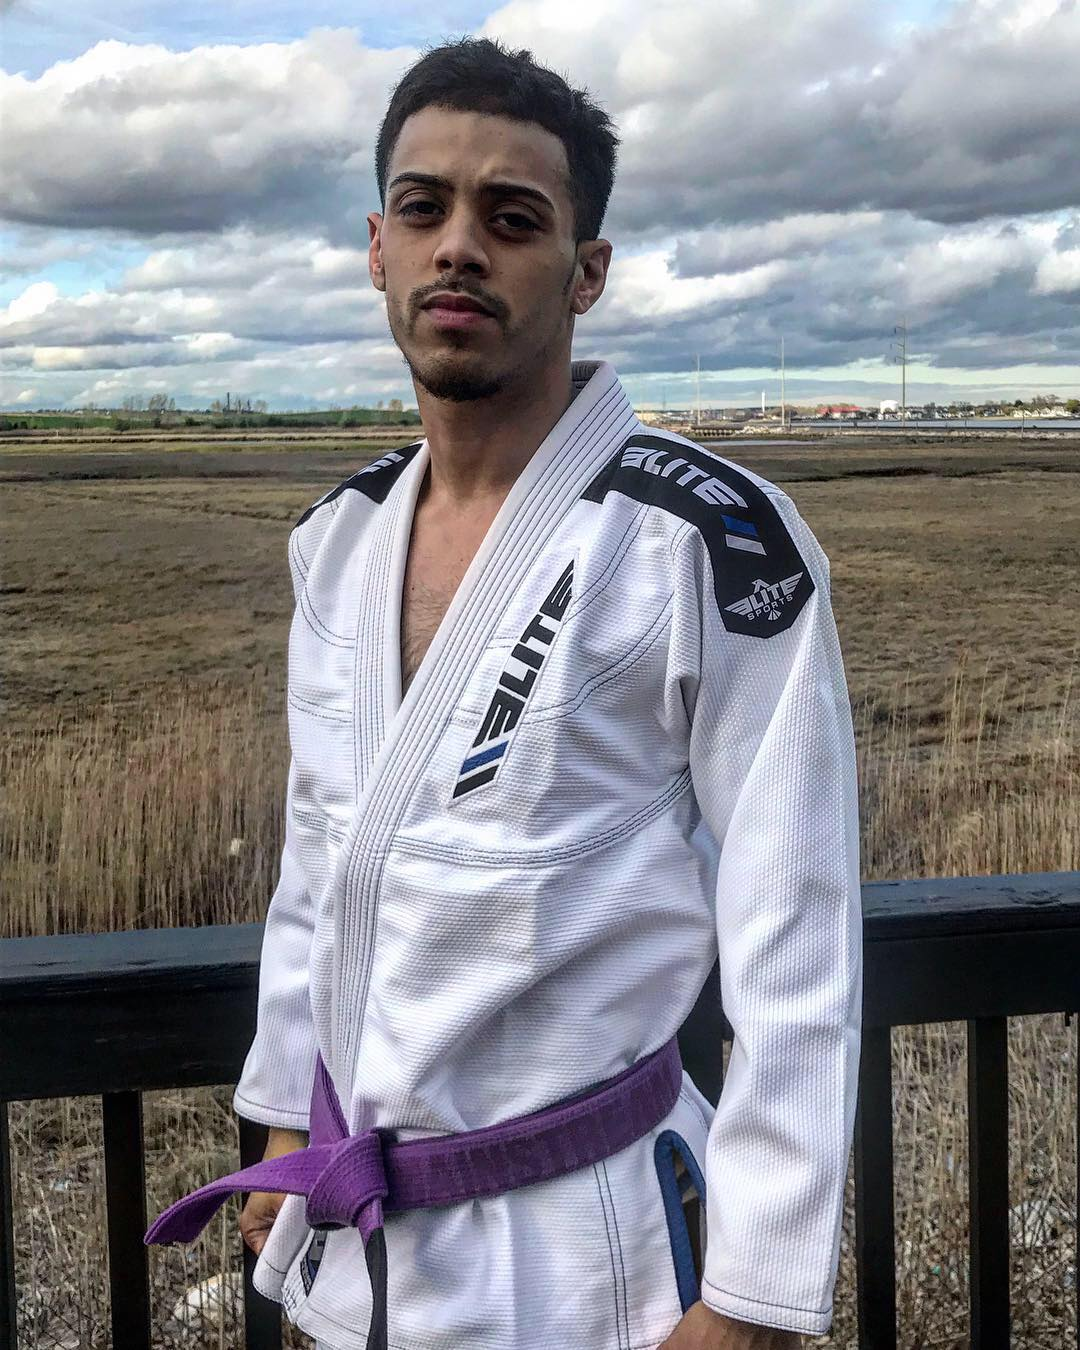 Elite sports Team Elite BJJ Jefferson Zelaya image11.jpg